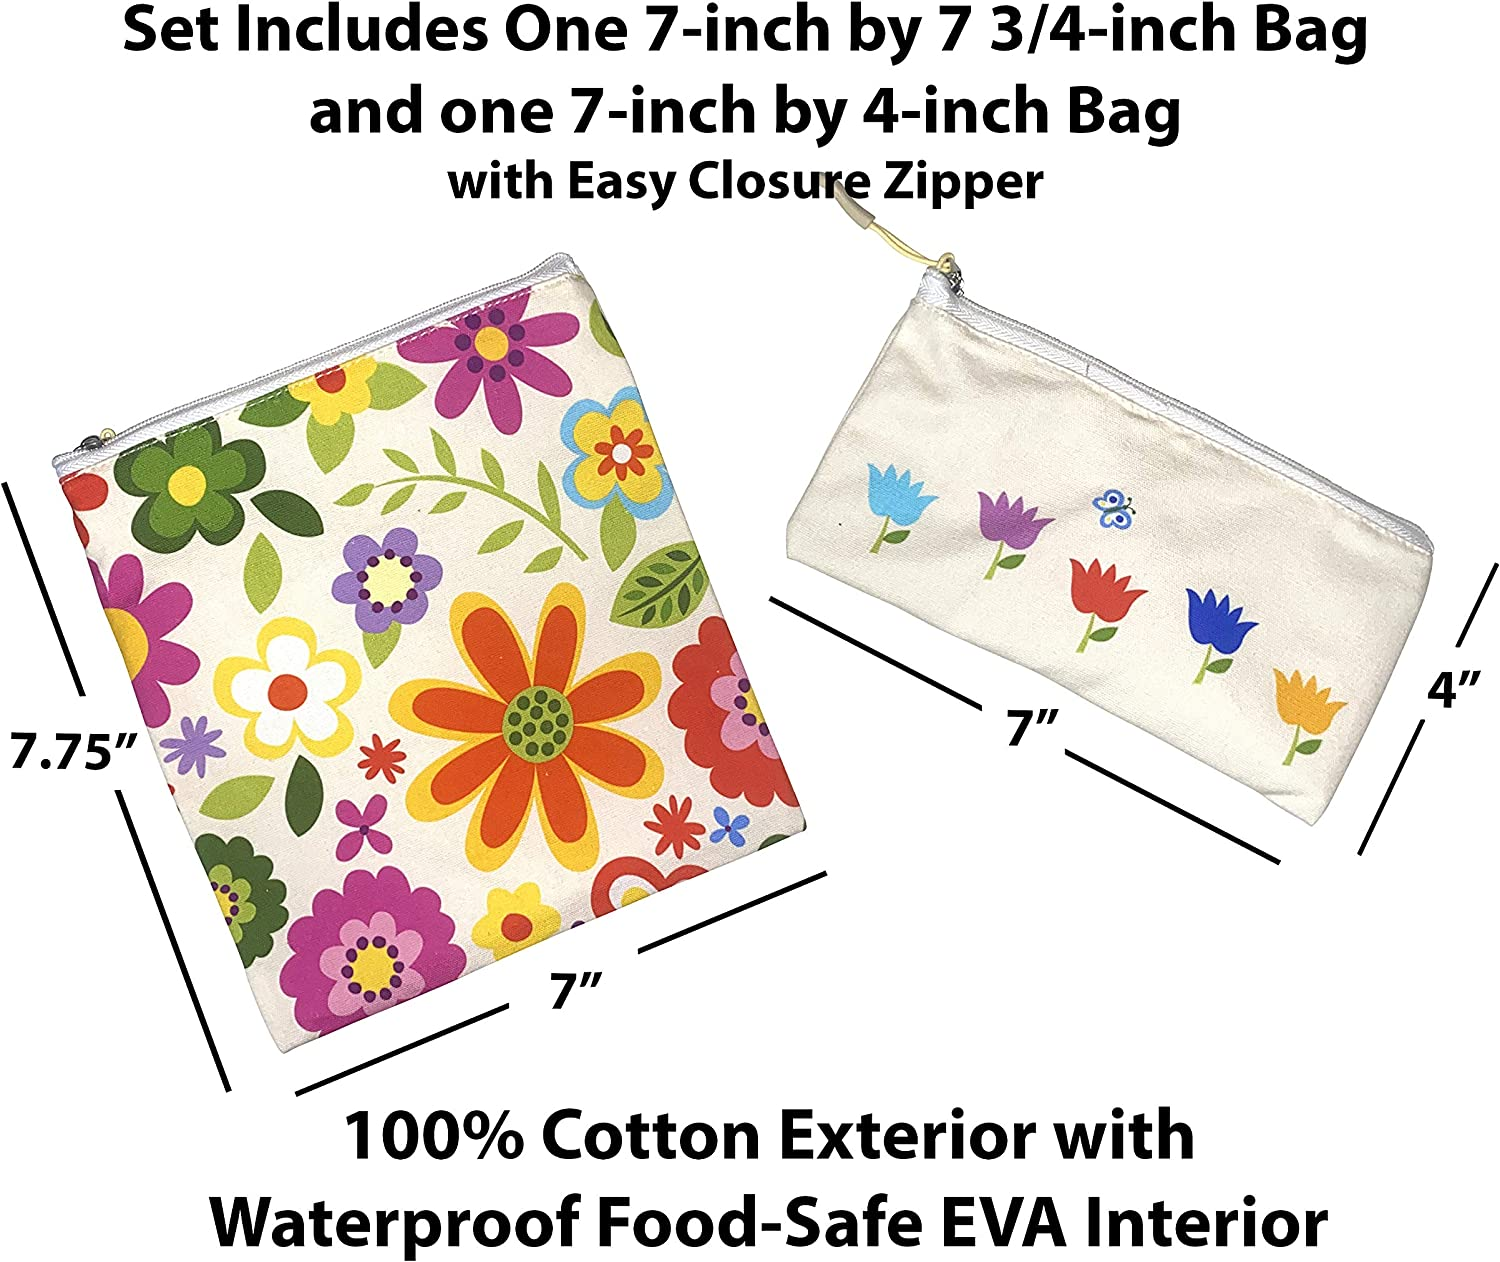 Wolla Pouch Reusable Sandwich Bags 2-Pack - Eco Friendly Reusable Snack Bags Washable and Dishwasher Safe - Snack Bags BPA Free - Reusable Snack Bags for Kids -7X7 and 7X4 inch bags (Flowers)